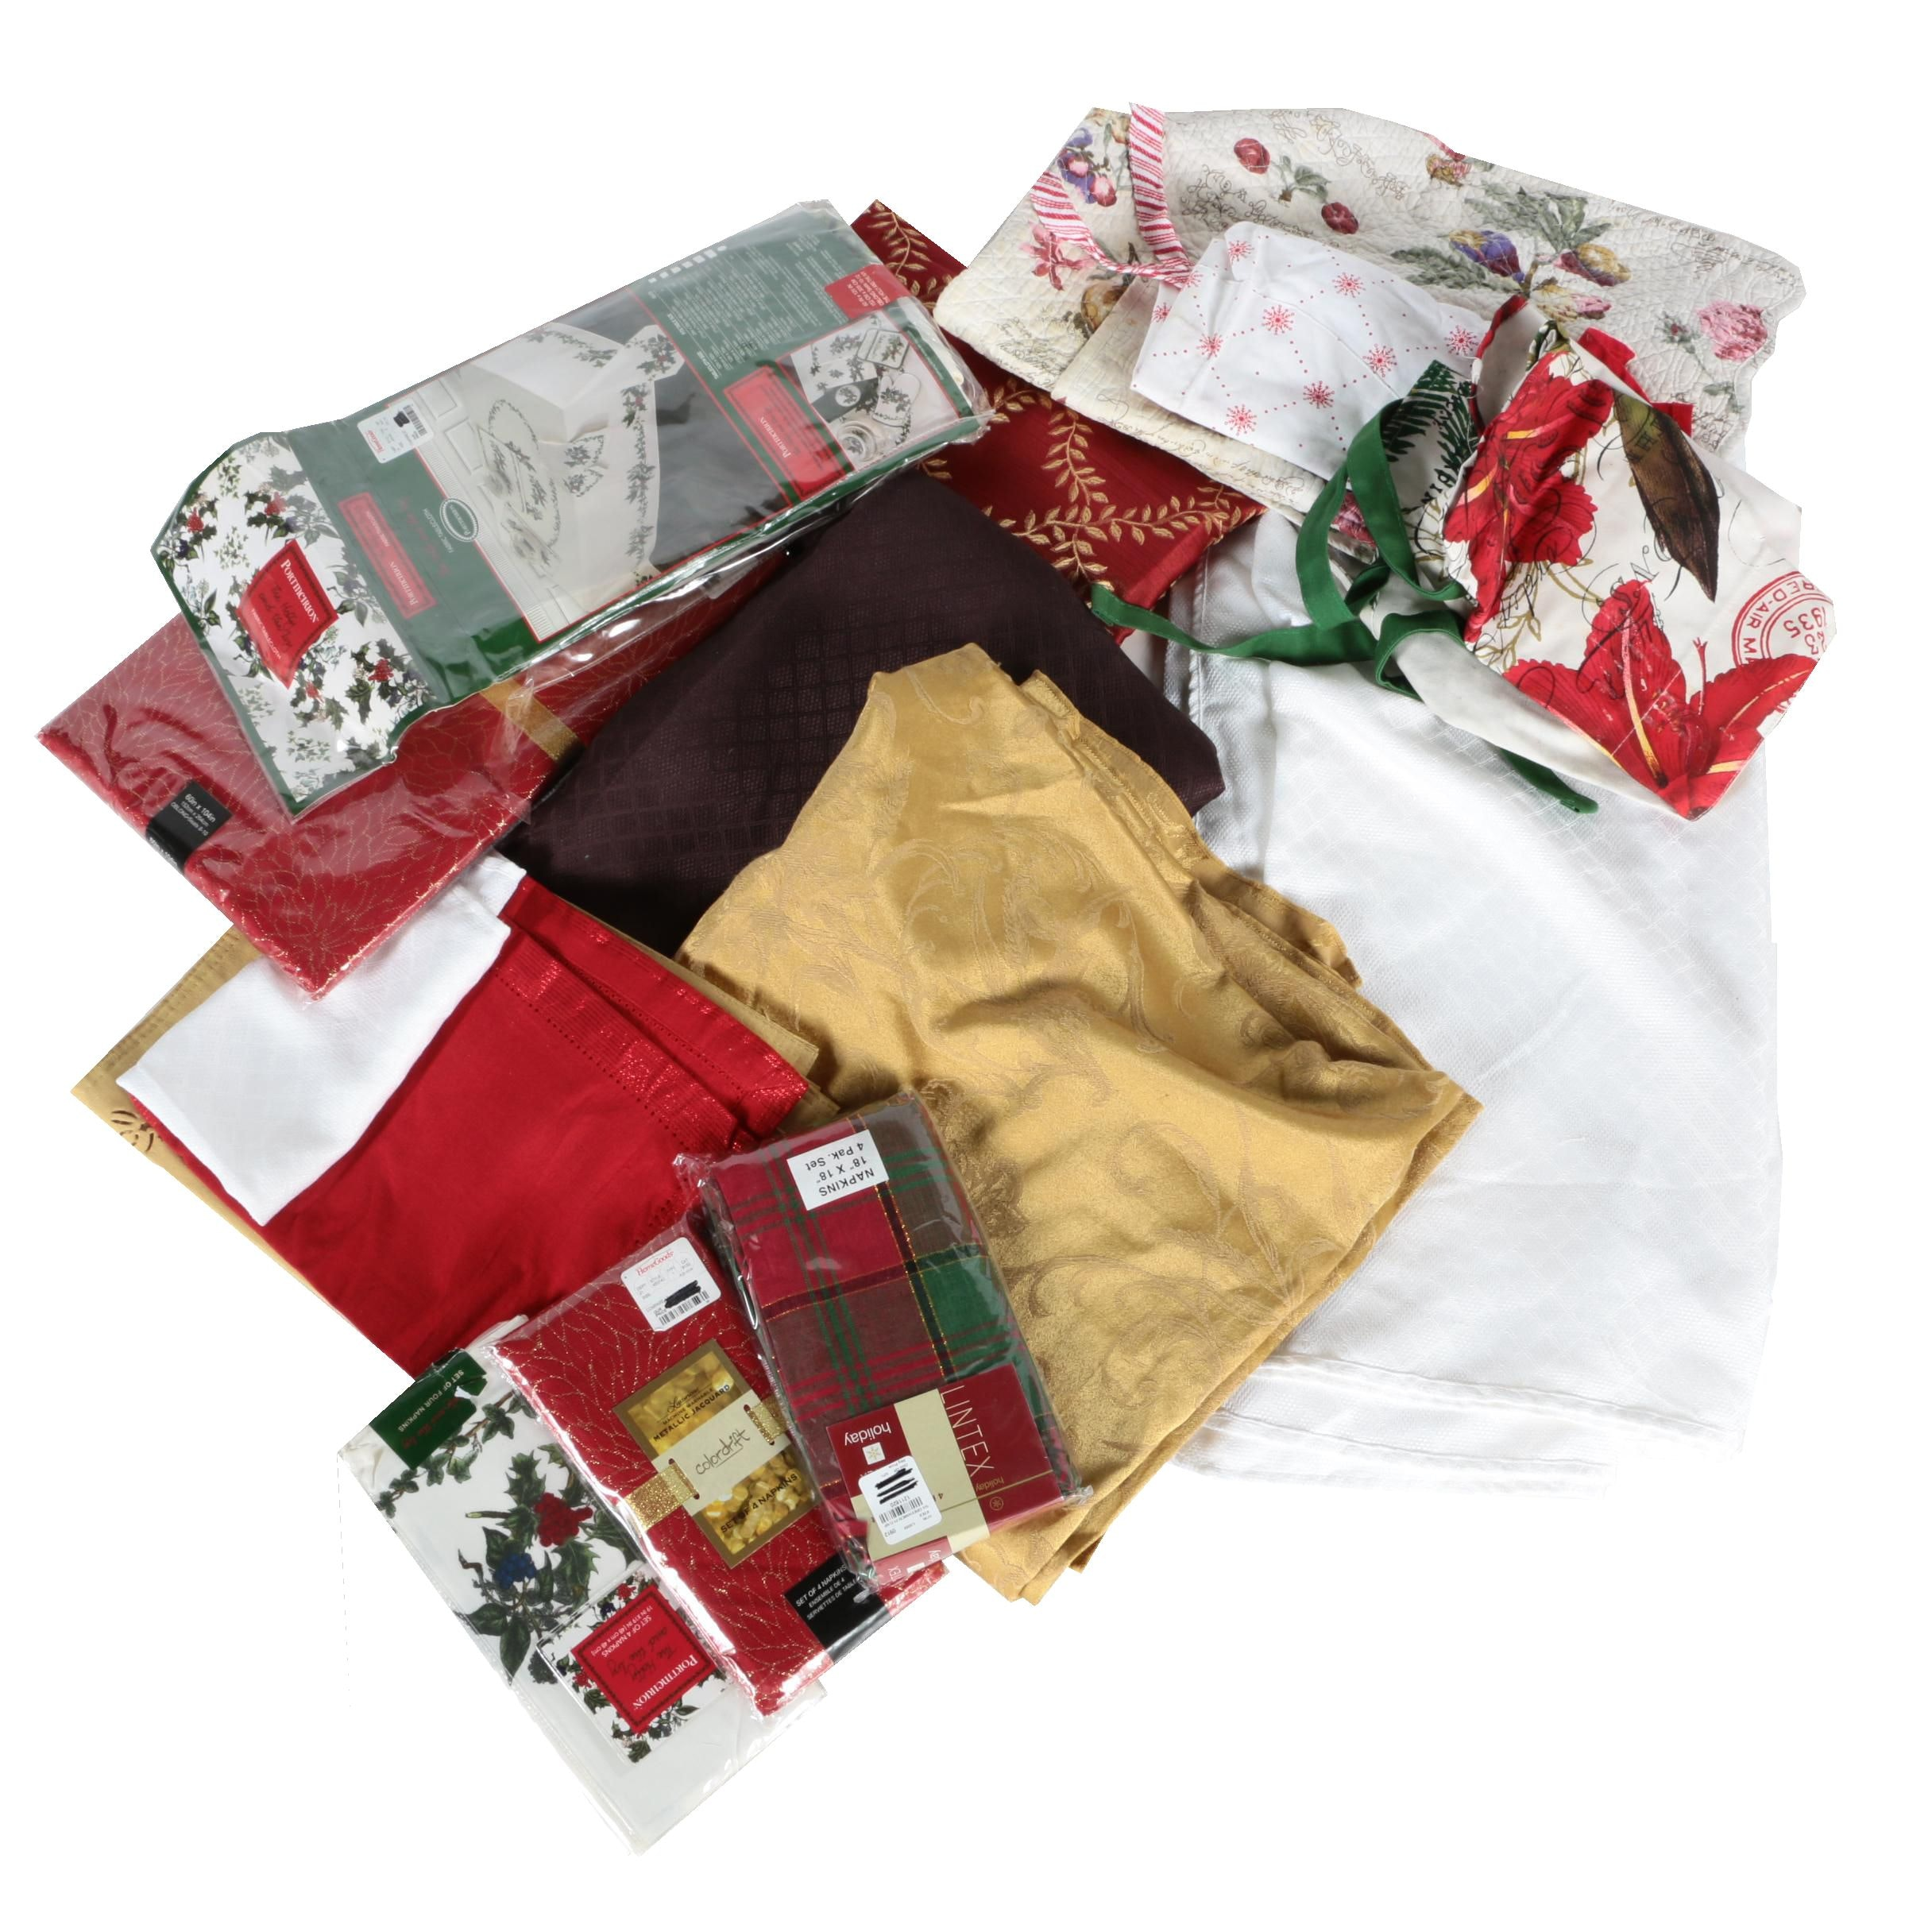 Assortment of Holiday Kitchen Linens